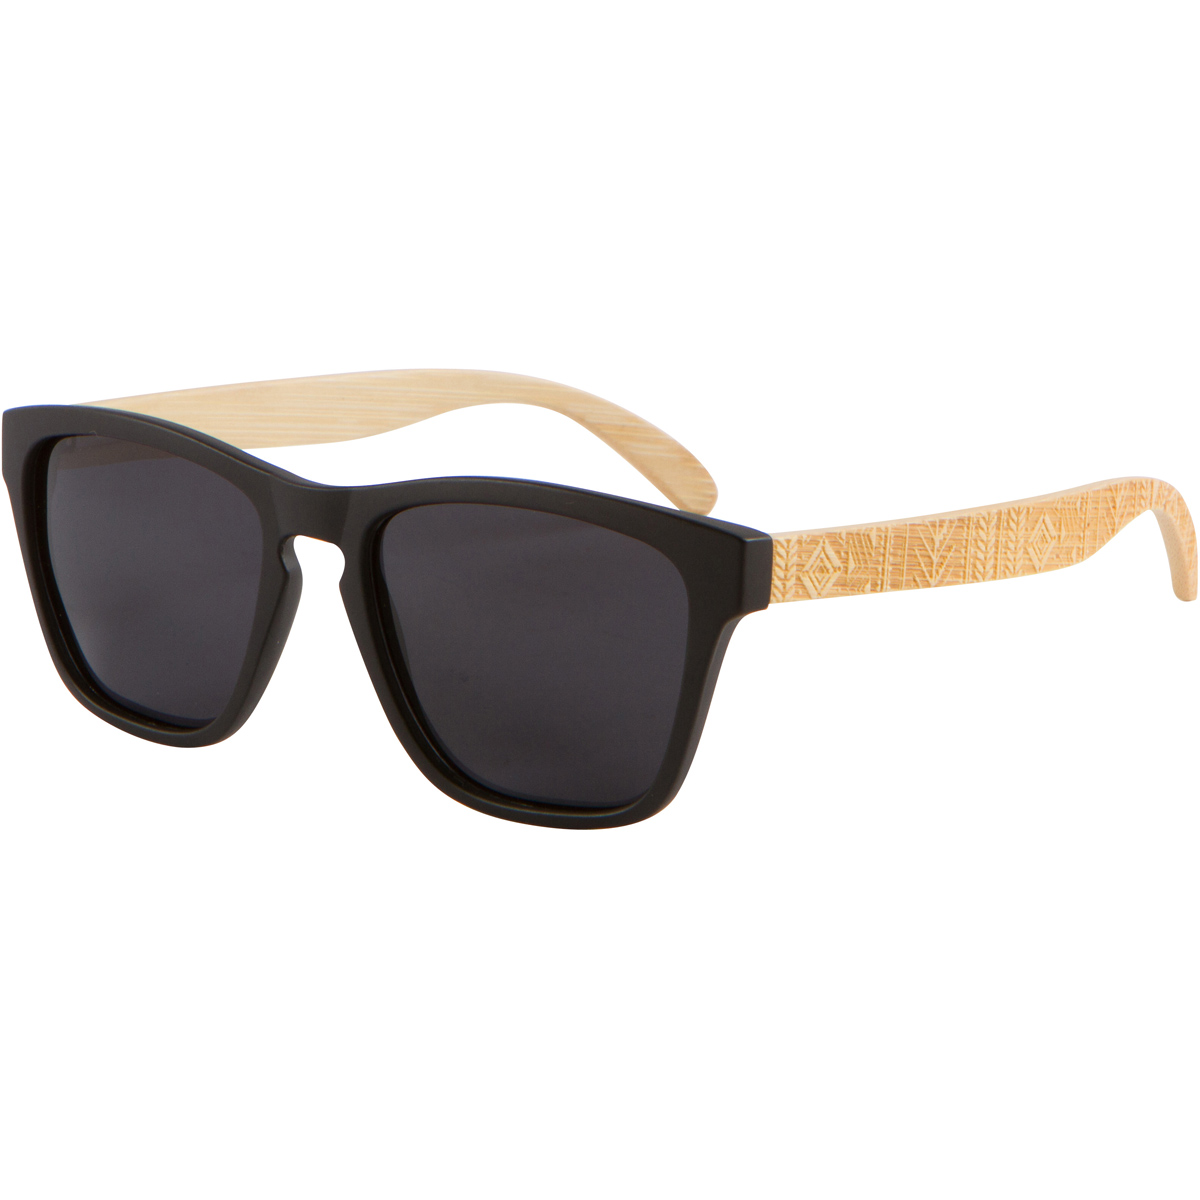 Tribe Wood Sunglasses